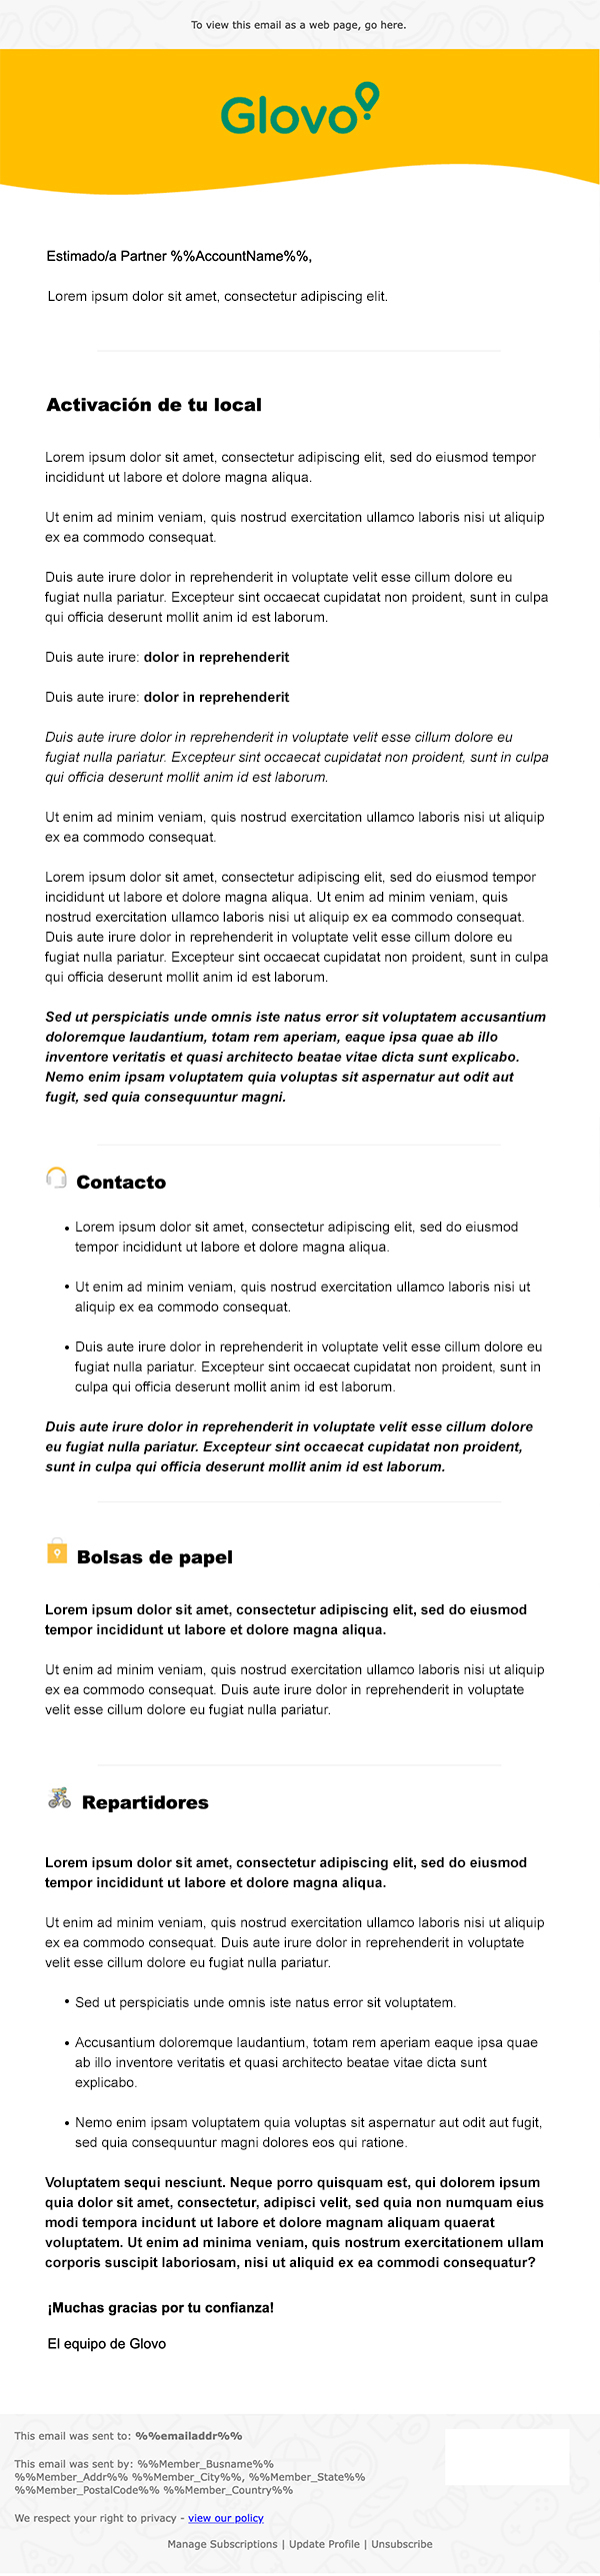 Email Glovo